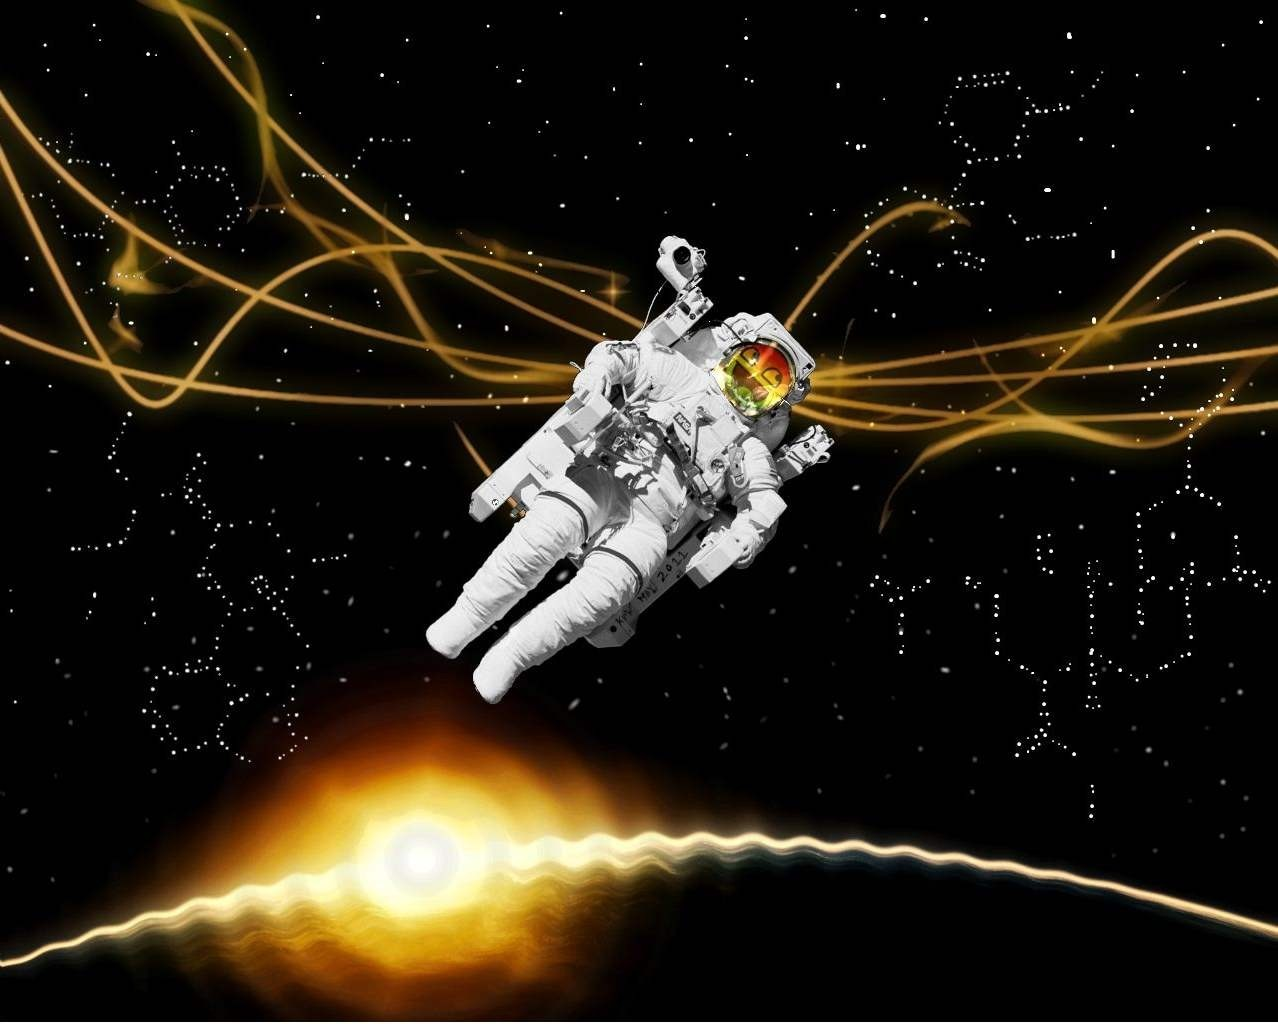 outer Space drugs astronauts HD Wallpaper